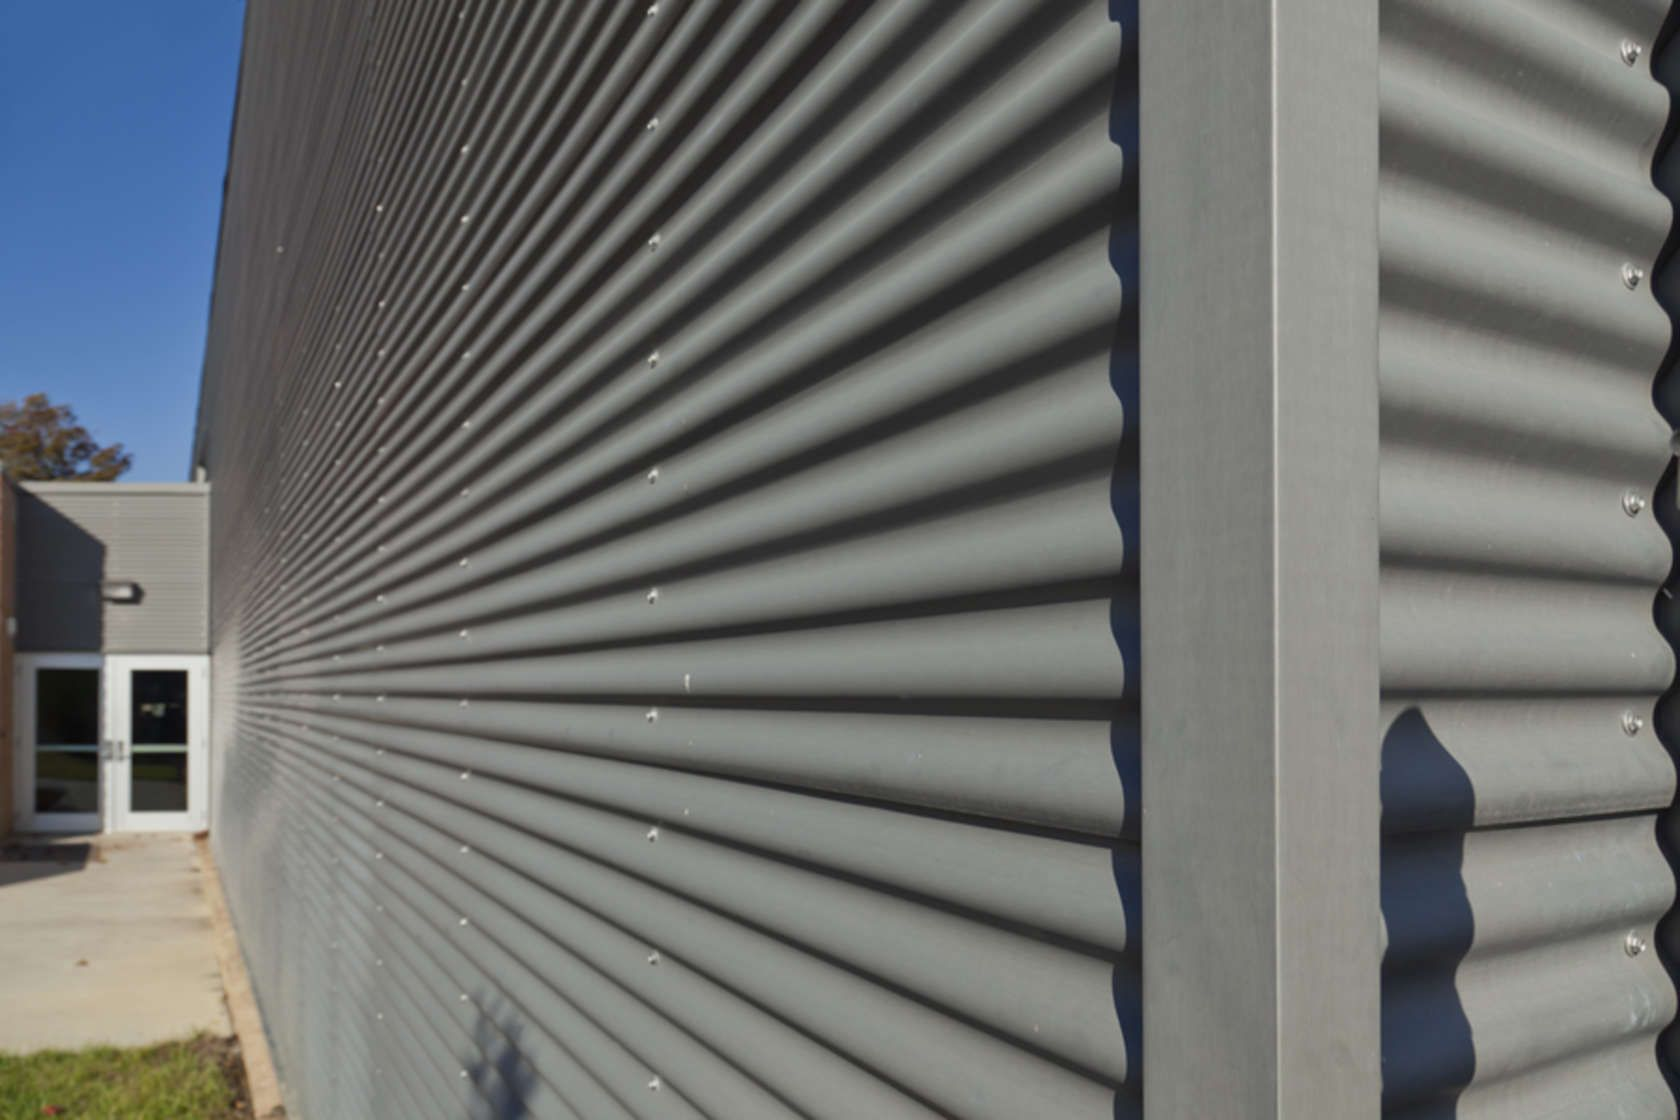 Vmzinc S Corrugated Wall Panels Belong To The Rain Screen Family Wall Cladding Installed On A Ventilated Air Space Corrugated Wall Corrugated Roofing Cladding